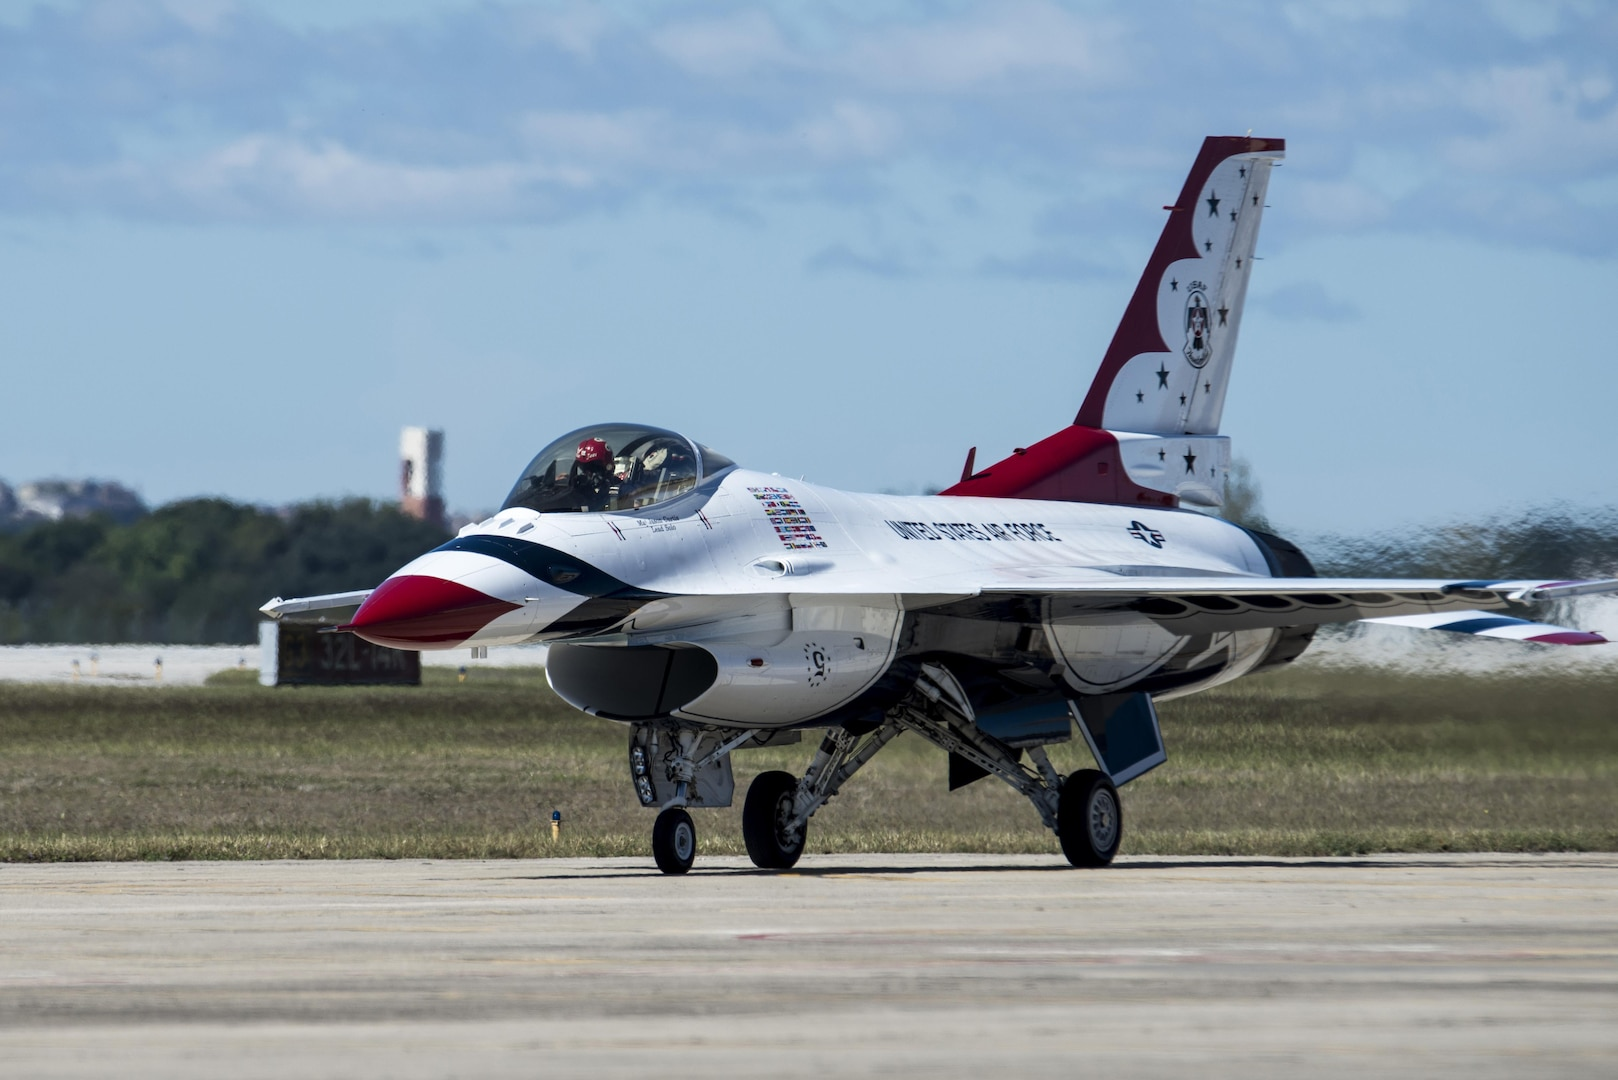 """U.S. Air Force Aerial Demonstration Squadron """"Thunderbirds"""" team members arrive at Joint Base San Antonio-Randolph prior to the 2015 Joint Base San Antonio air show and open house Oct. 26, 2015.  Air shows allow the Air Force to display the capabilities of our aircraft to the American taxpayer through aerial demonstrations and static displays.  The air show will allow attendees to get up close and personal to see some of the equipment and aircraft used by the U.S. military today."""